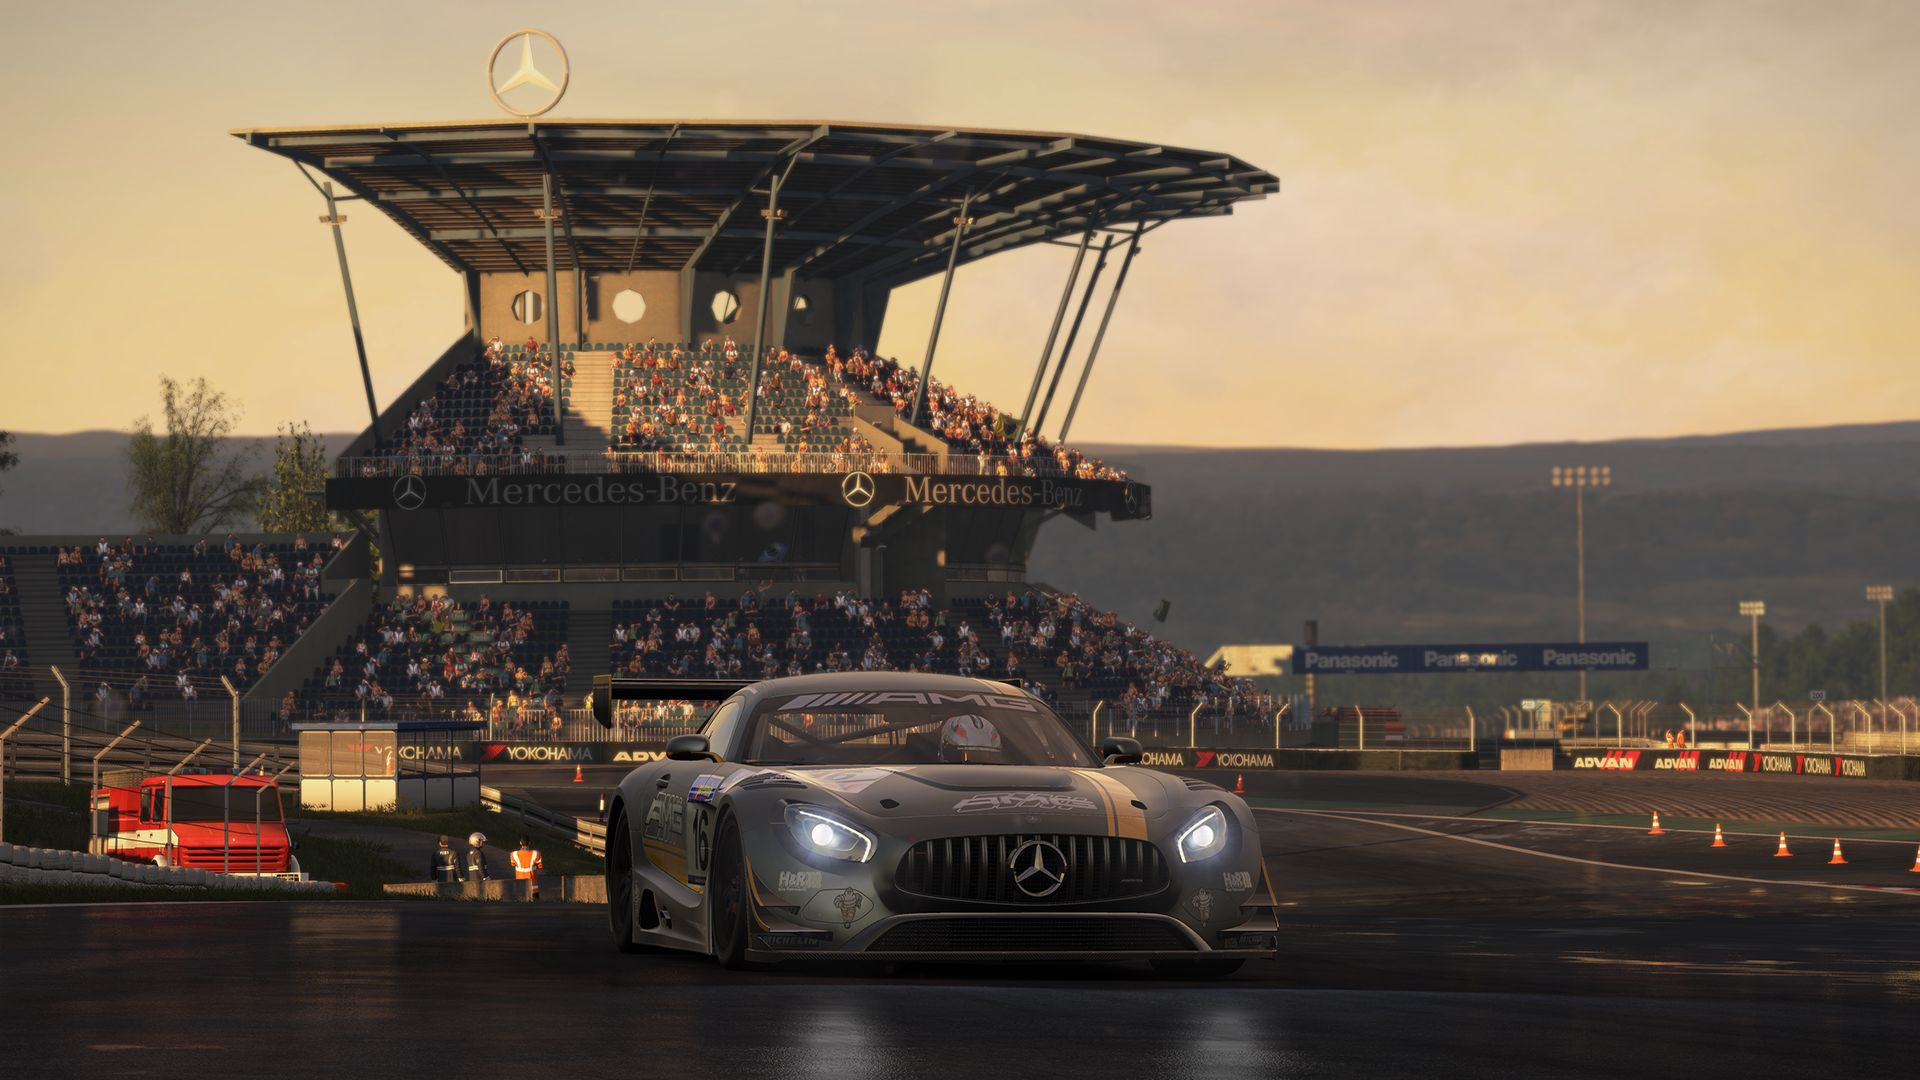 Project cars new mercedes amg gt3 previews virtualr sim racing - Ss144508_1